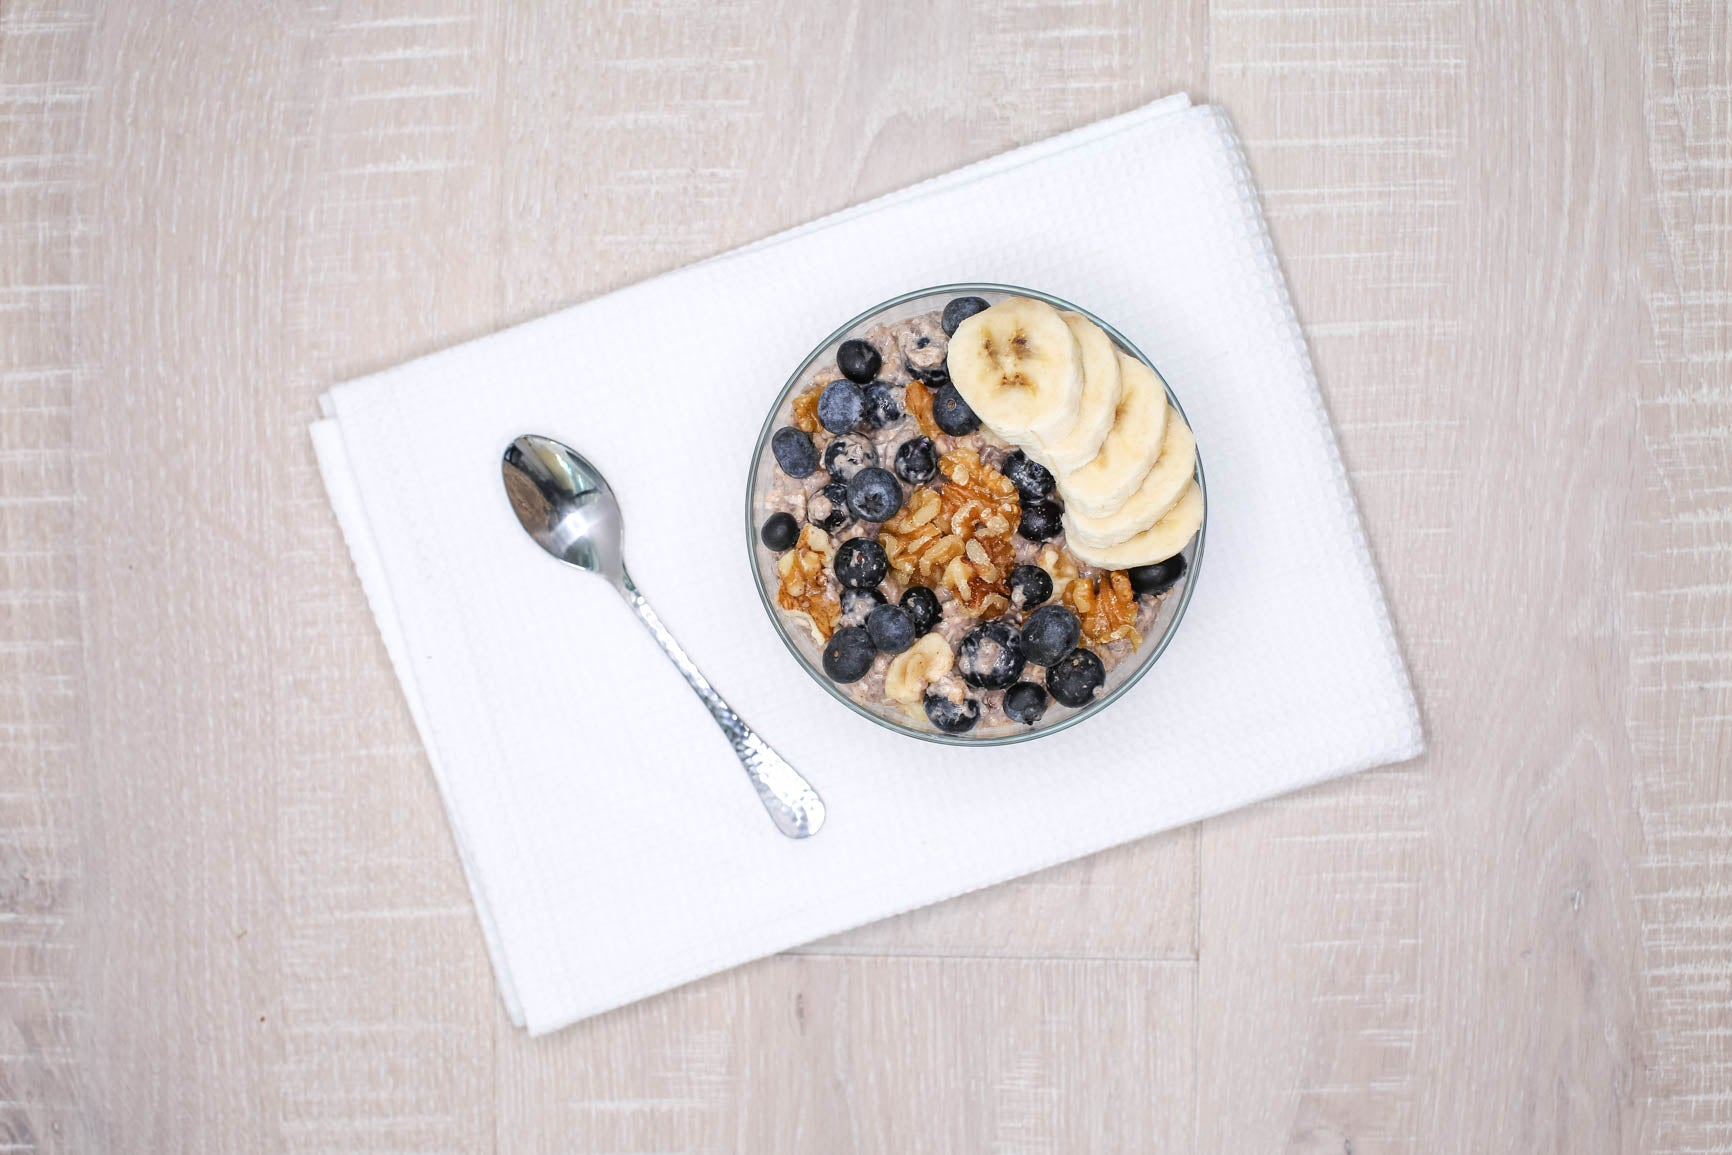 Blueberry Banana Walnut Overnight Oats